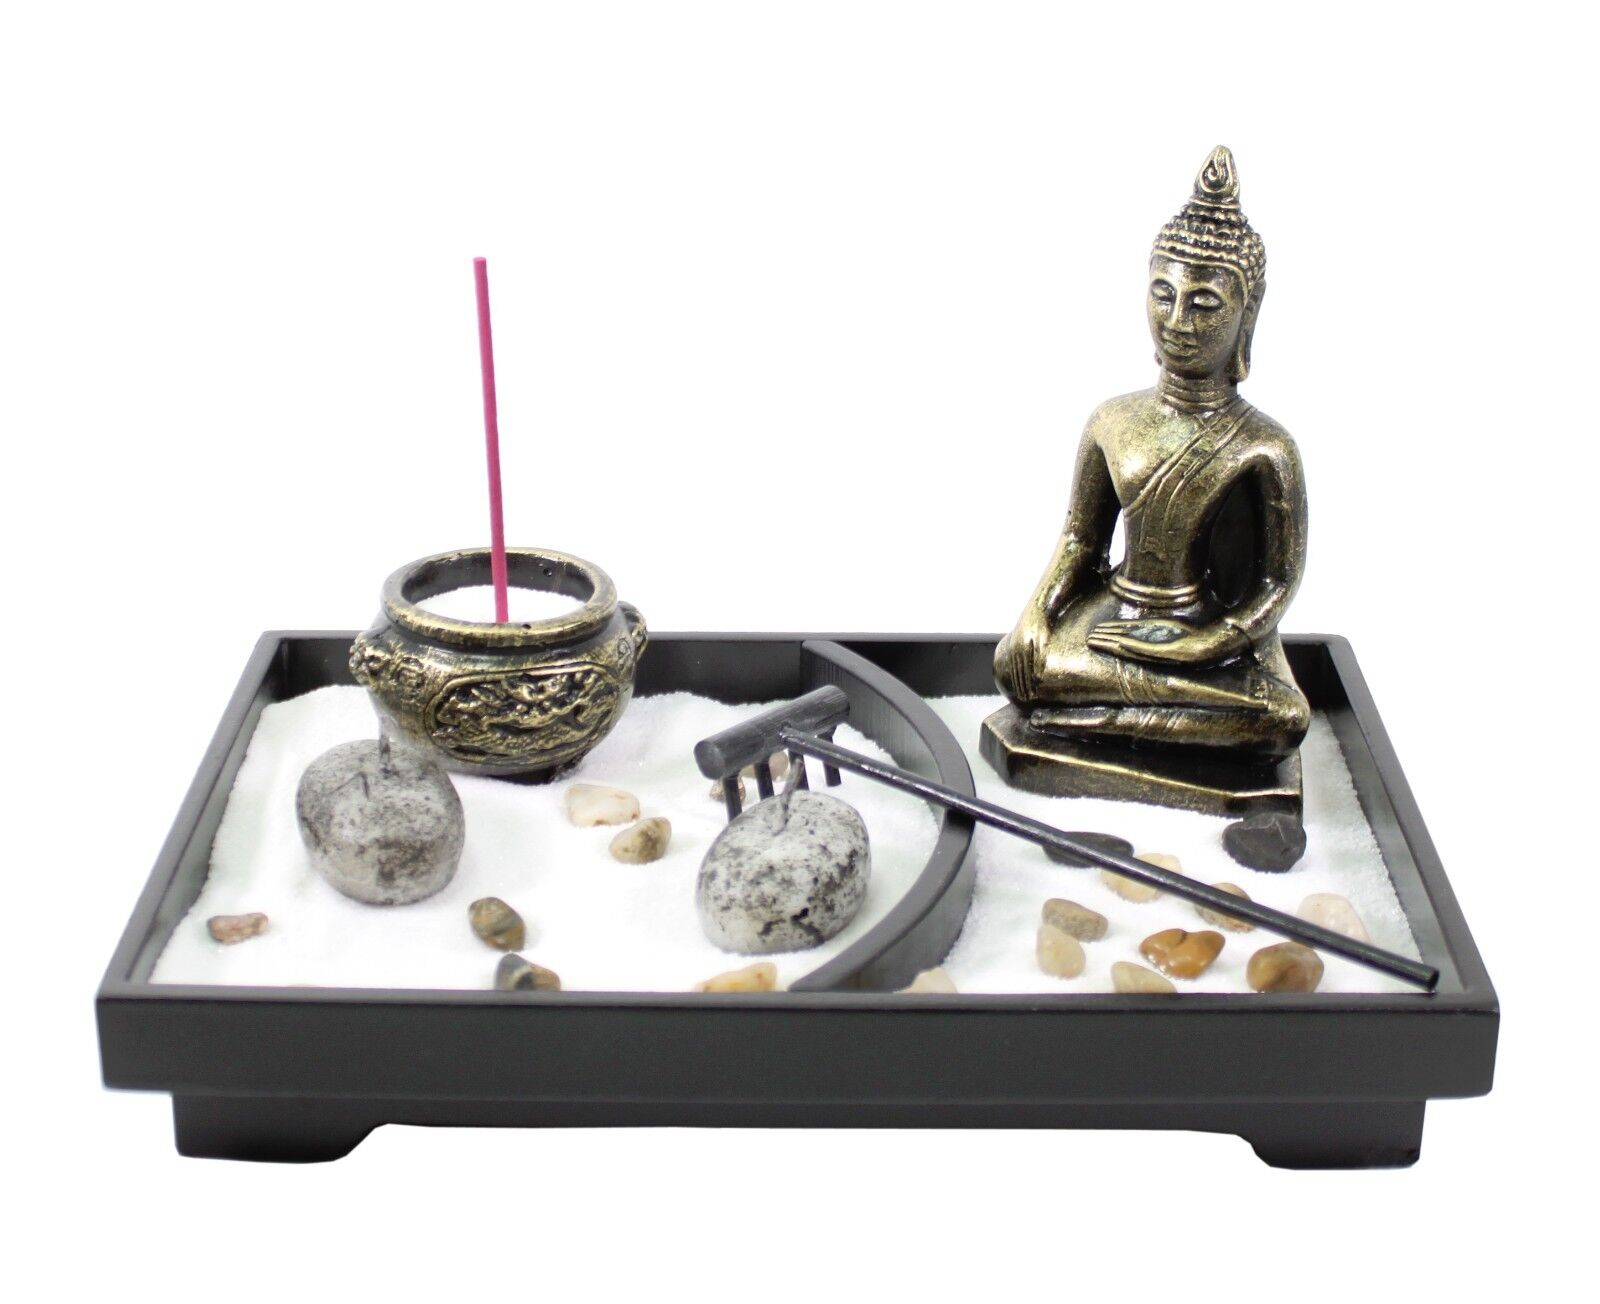 Tabletop zen garden buddha rock rake sand candle incense for Table zen garden